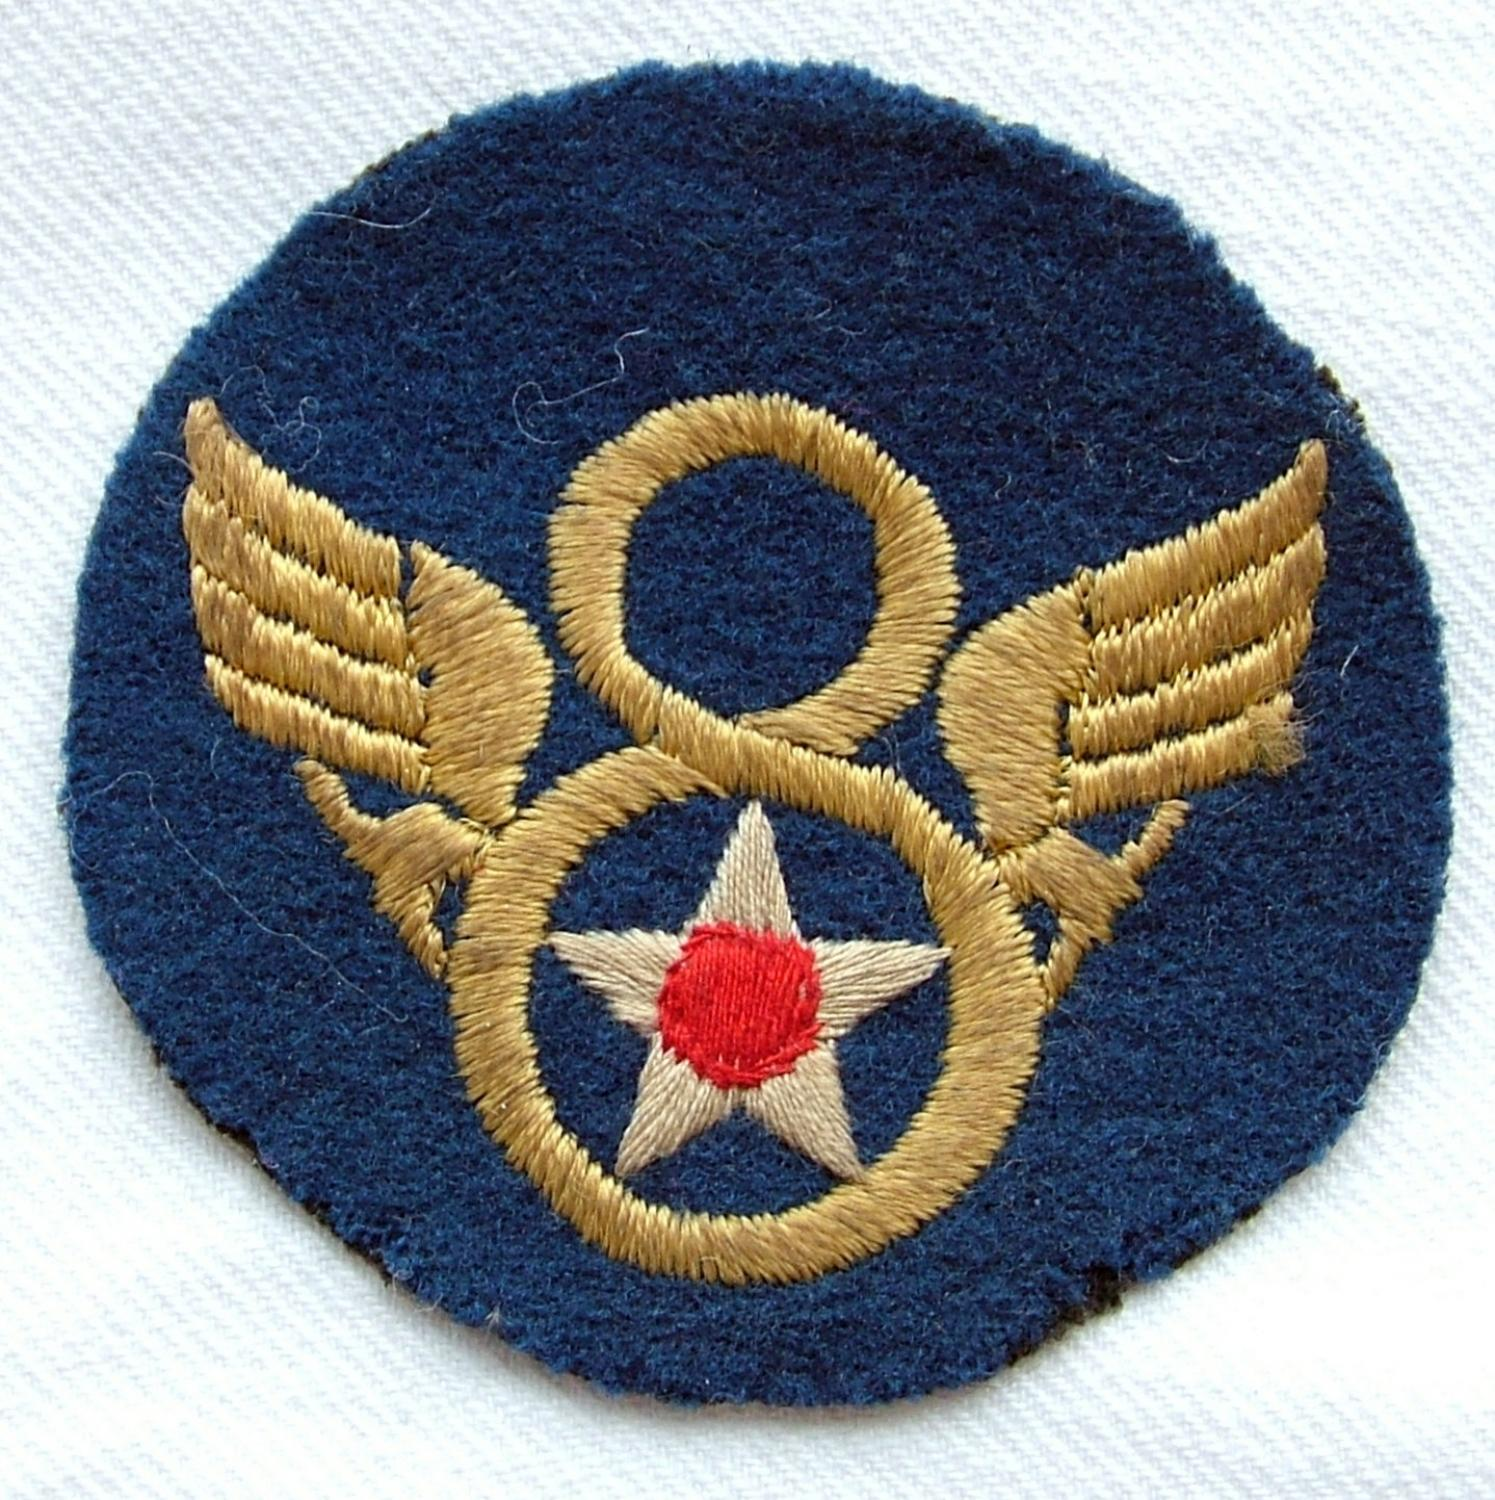 USAAF 8th AAF Shoulder Patch - English Made